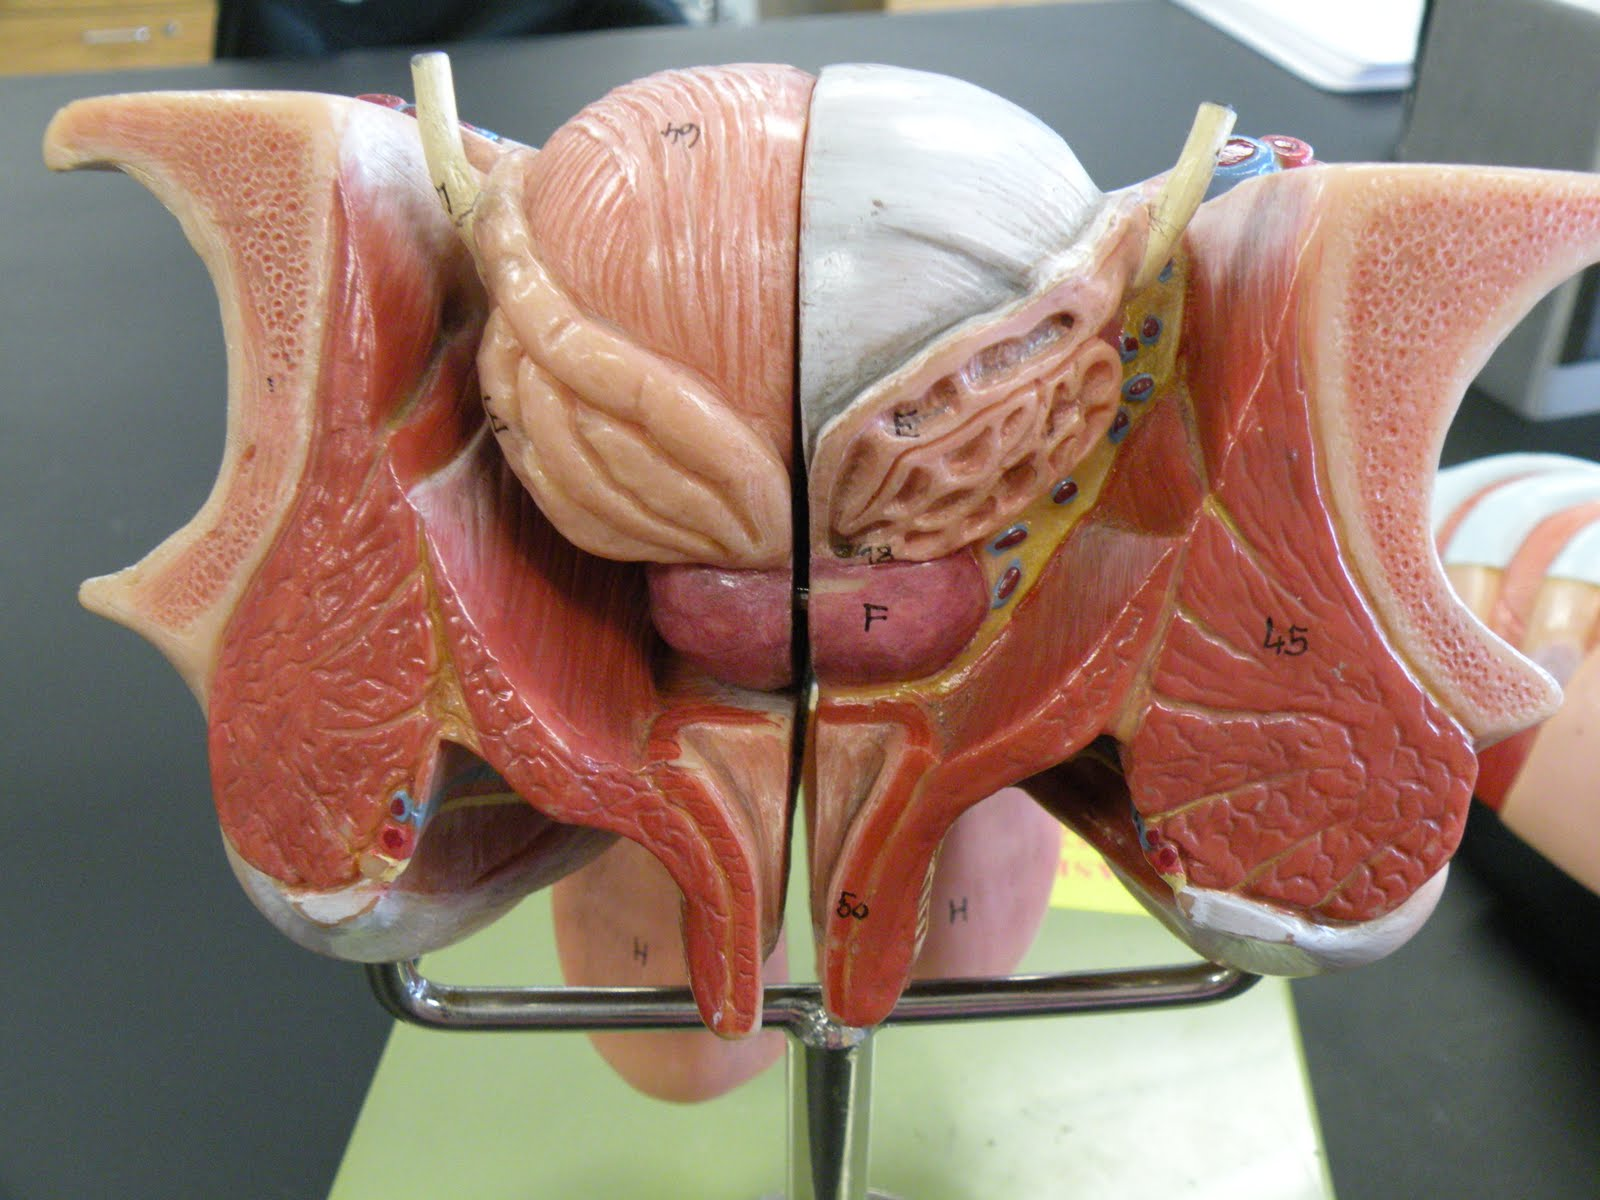 anatomy and physiology the female reproductive Learning objectives define the terms listed identify the female external  reproductive organs explain the structure of the bony pelvis explain the  functions and.